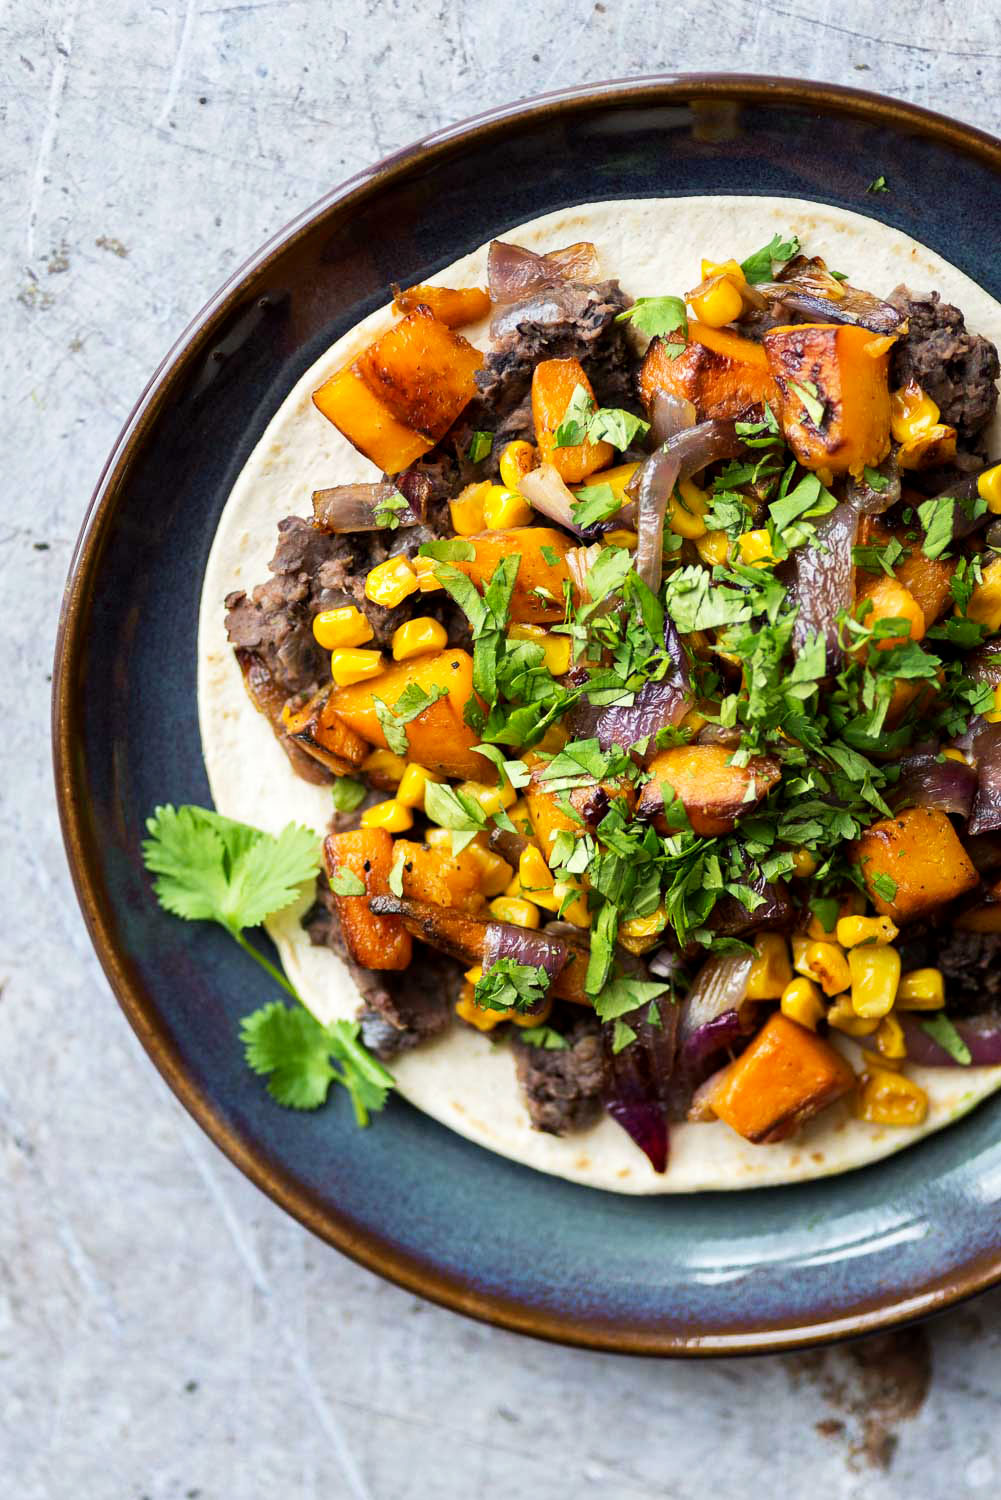 Veggie Tacos, refried black beans, roasted butternut squash and sweetcorn